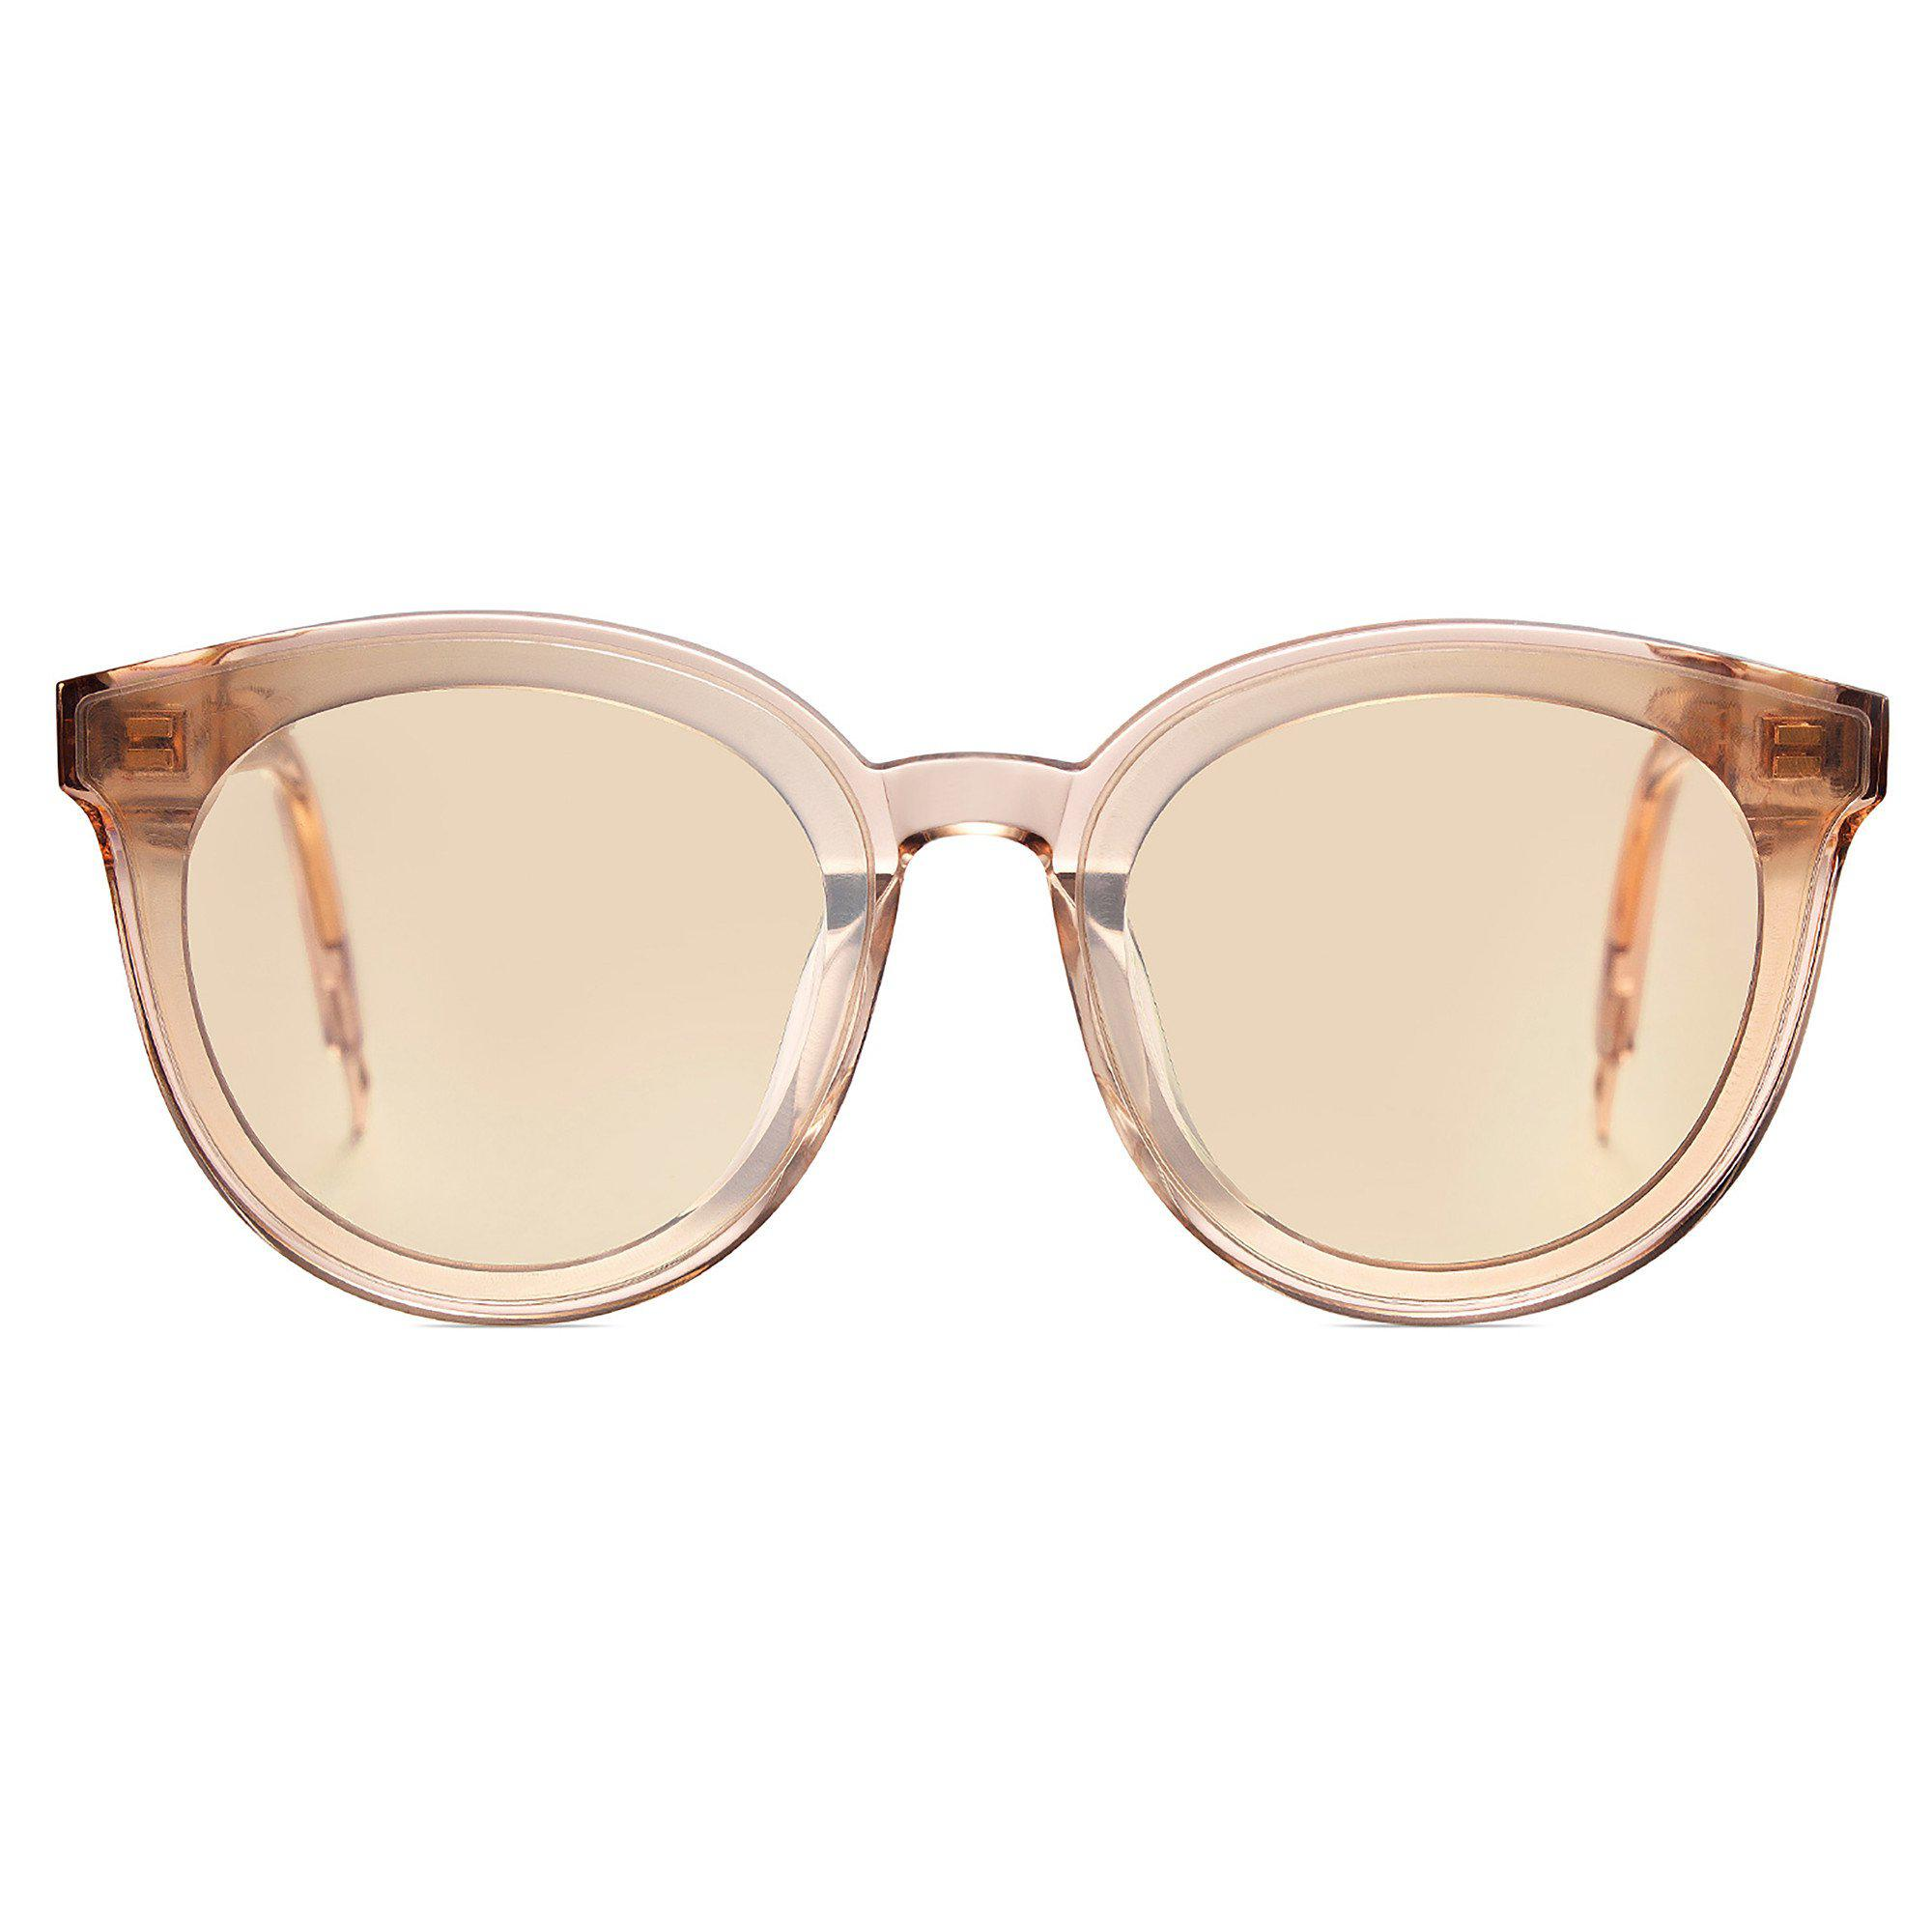 a792f84fa8 Lyst - Gentle Monster Black Peter Sand Sunglasses in Natural